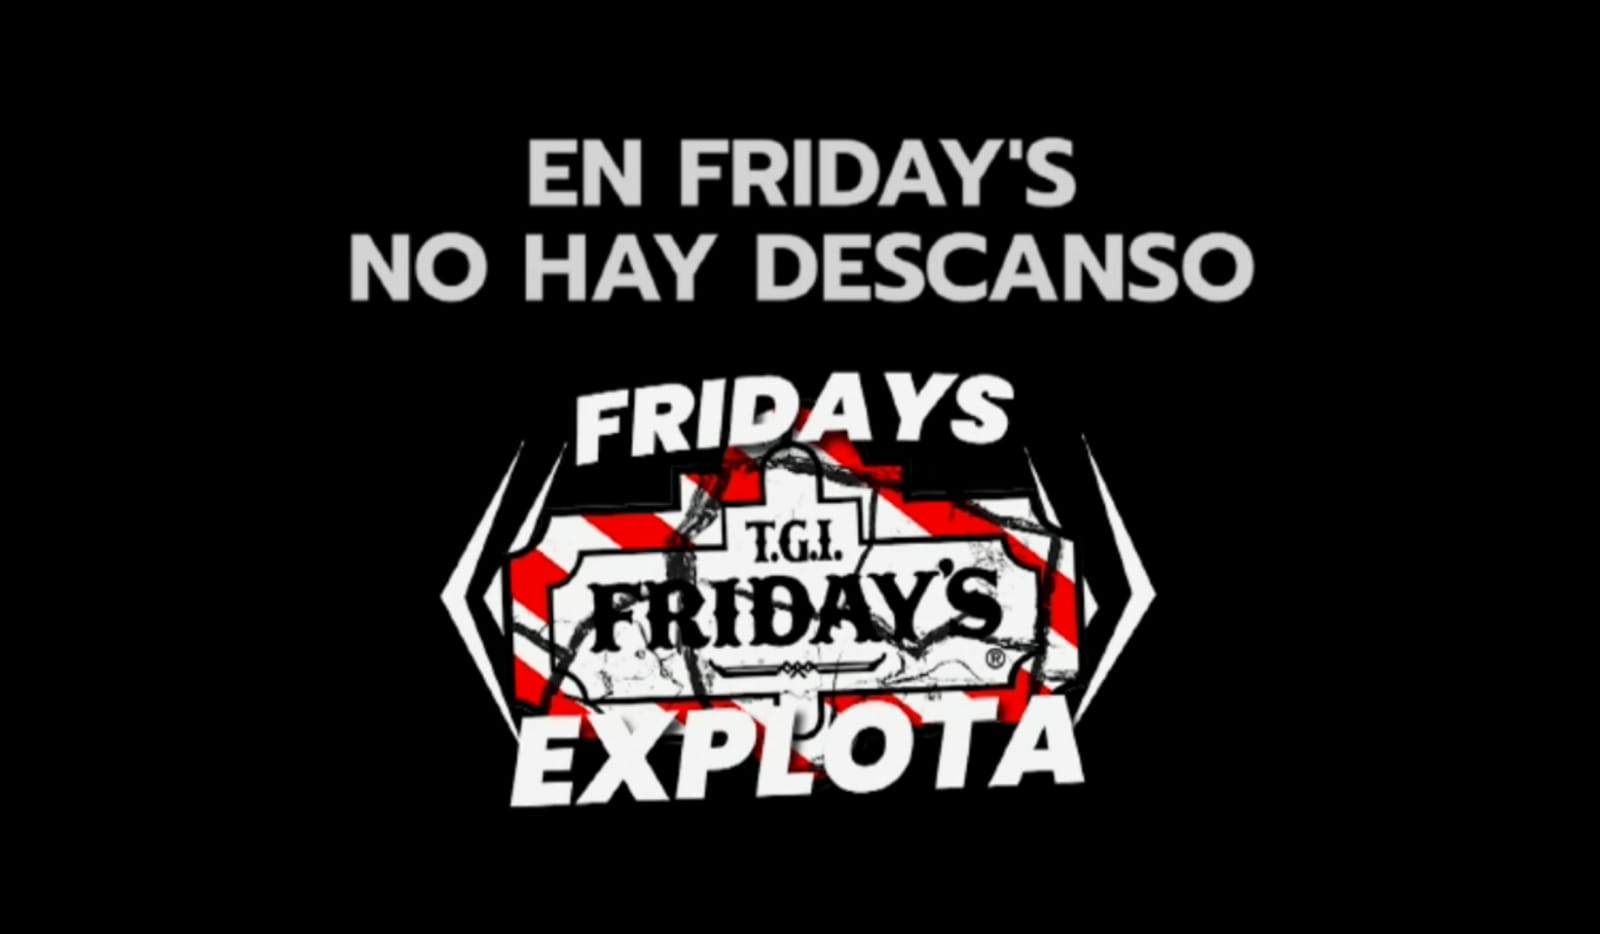 En Friday's No Hay Descanso